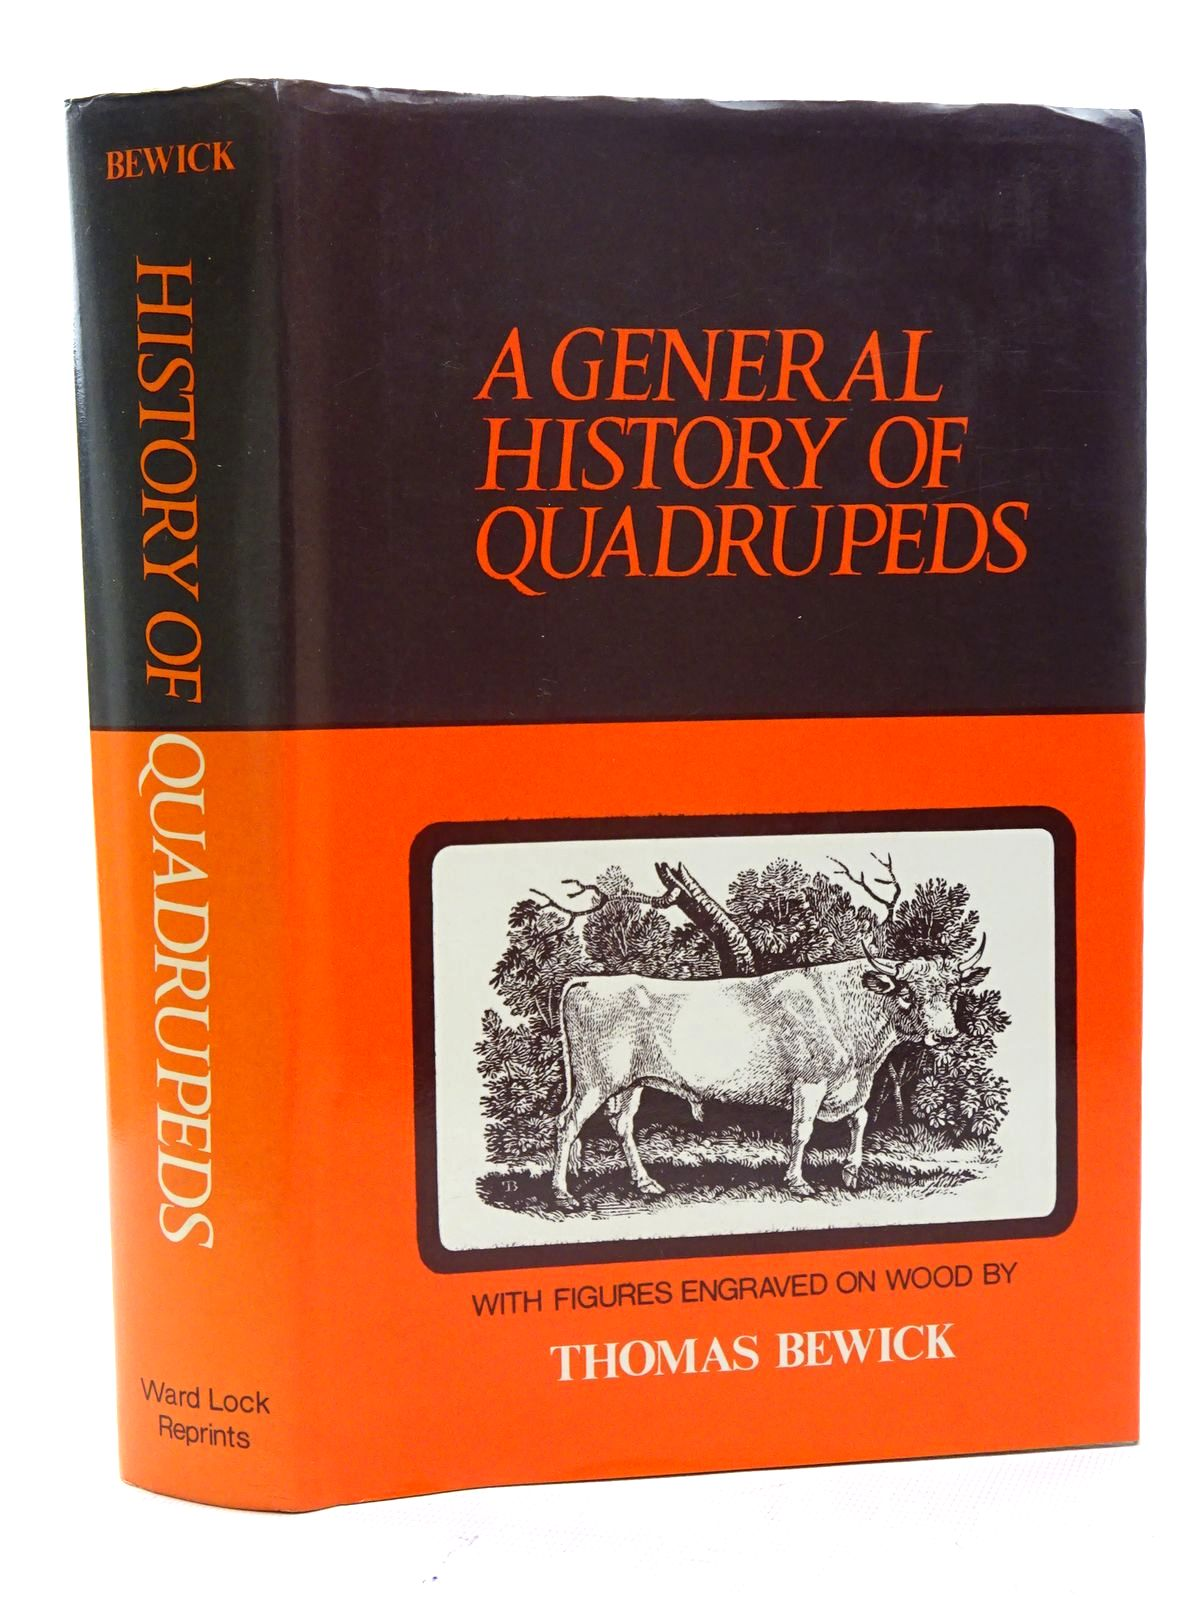 Photo of A GENERAL HISTORY OF QUADRUPEDS written by Bewick, Thomas illustrated by Bewick, Thomas published by Ward Lock Reprints (STOCK CODE: 1610658)  for sale by Stella & Rose's Books